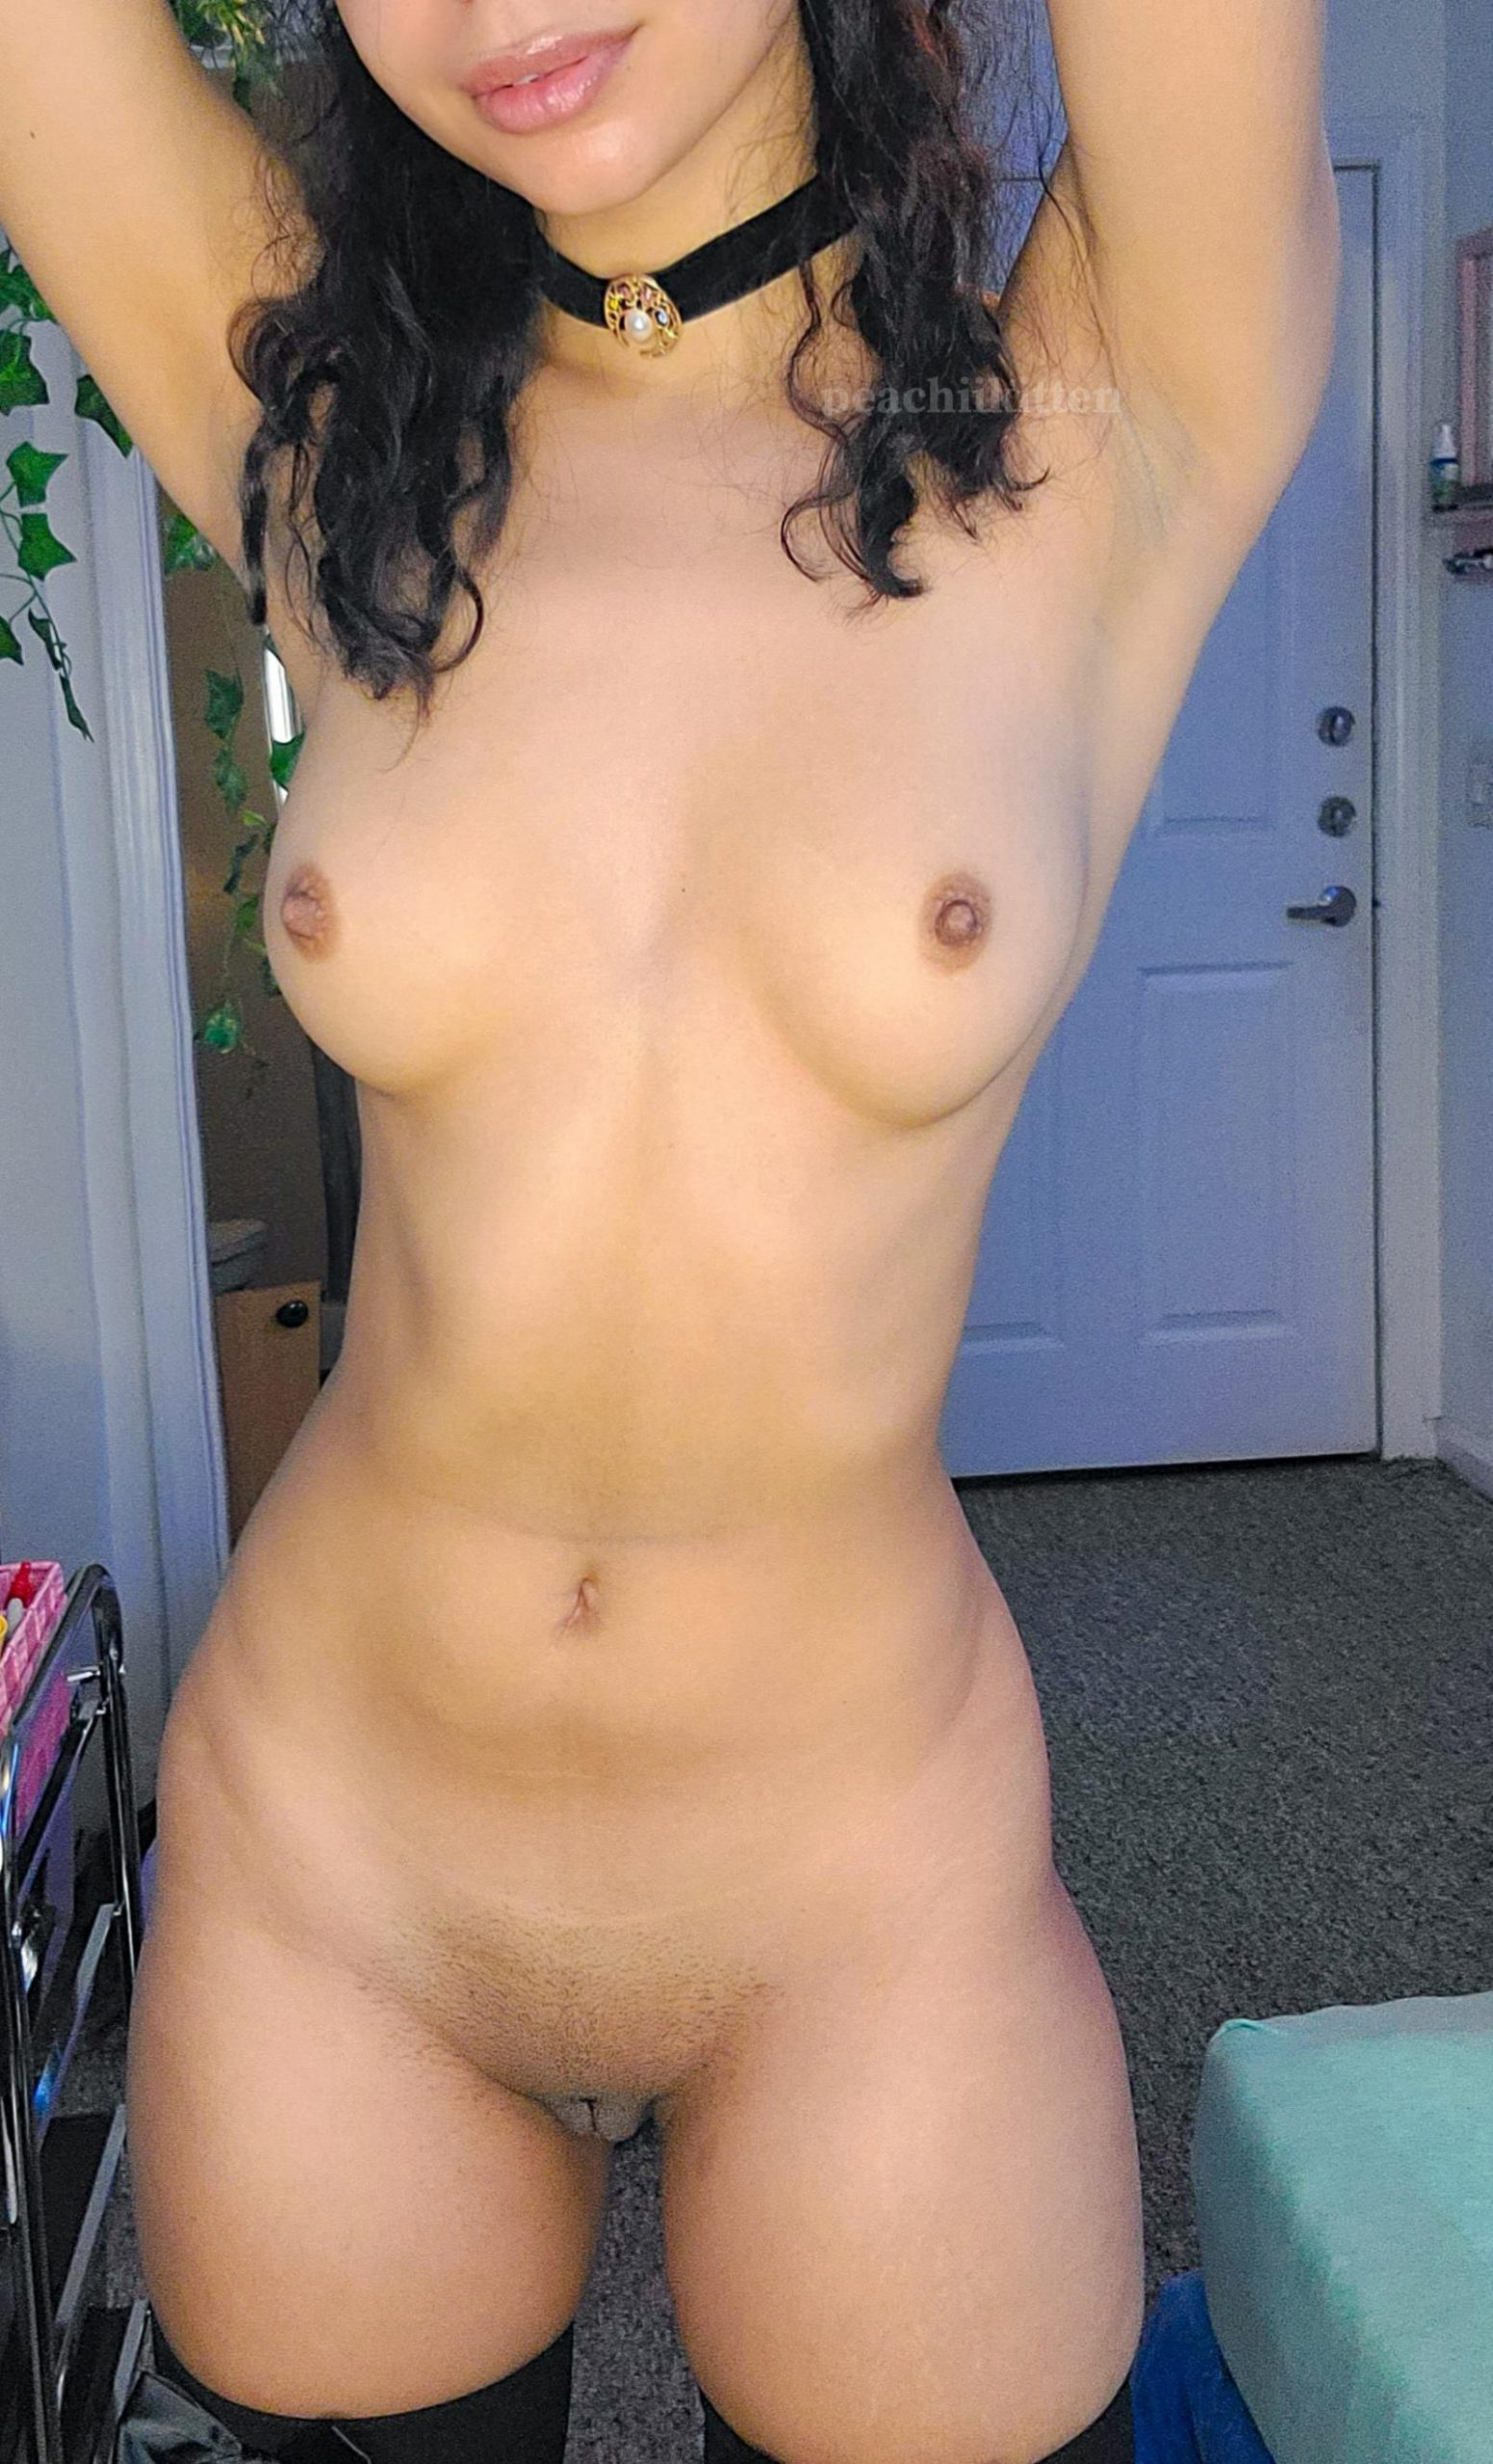 Anyone looking for a small nympho with an extra small pussy?